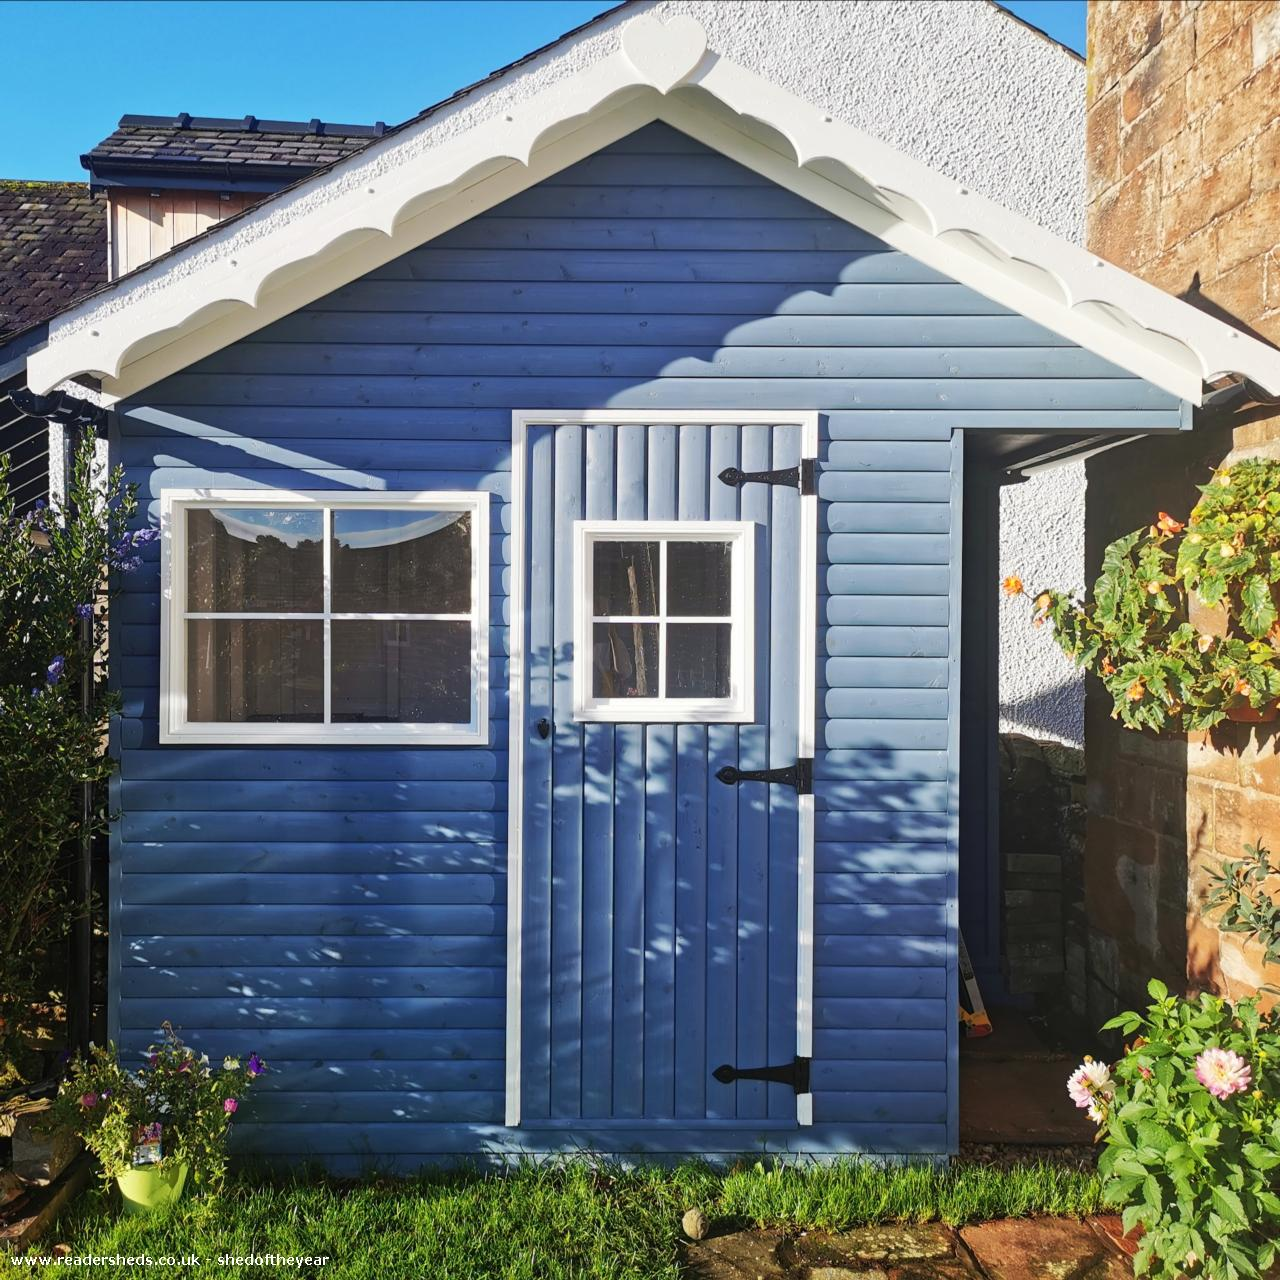 Photo of Posh Blue Shed, entry to Shed of the year-Front in sunshine